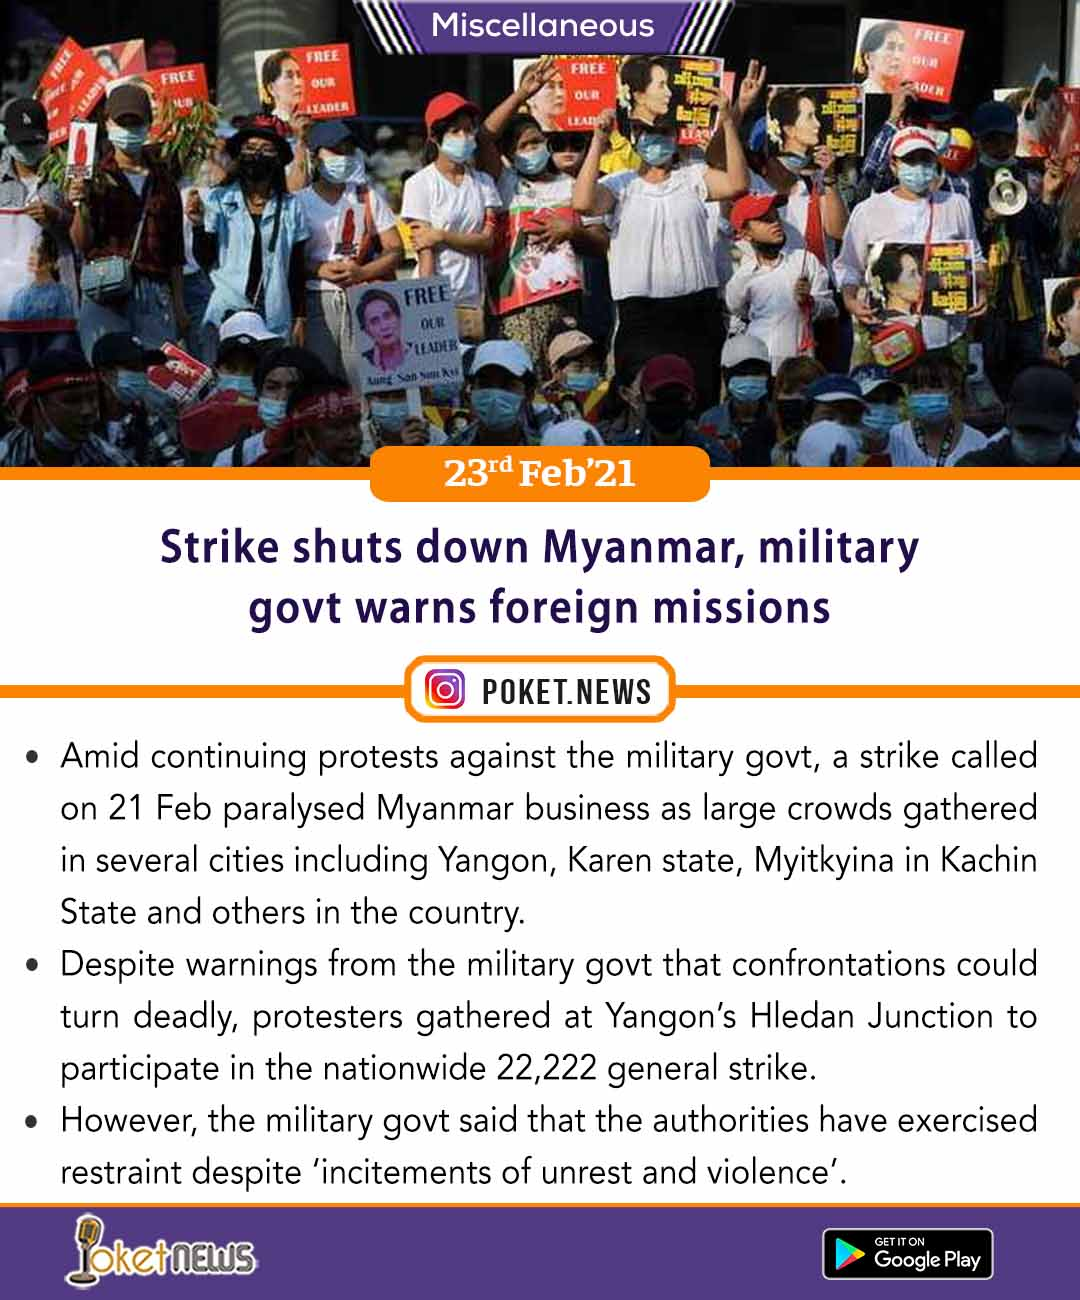 Strike shuts down Myanmar, military govt warns foreign missions